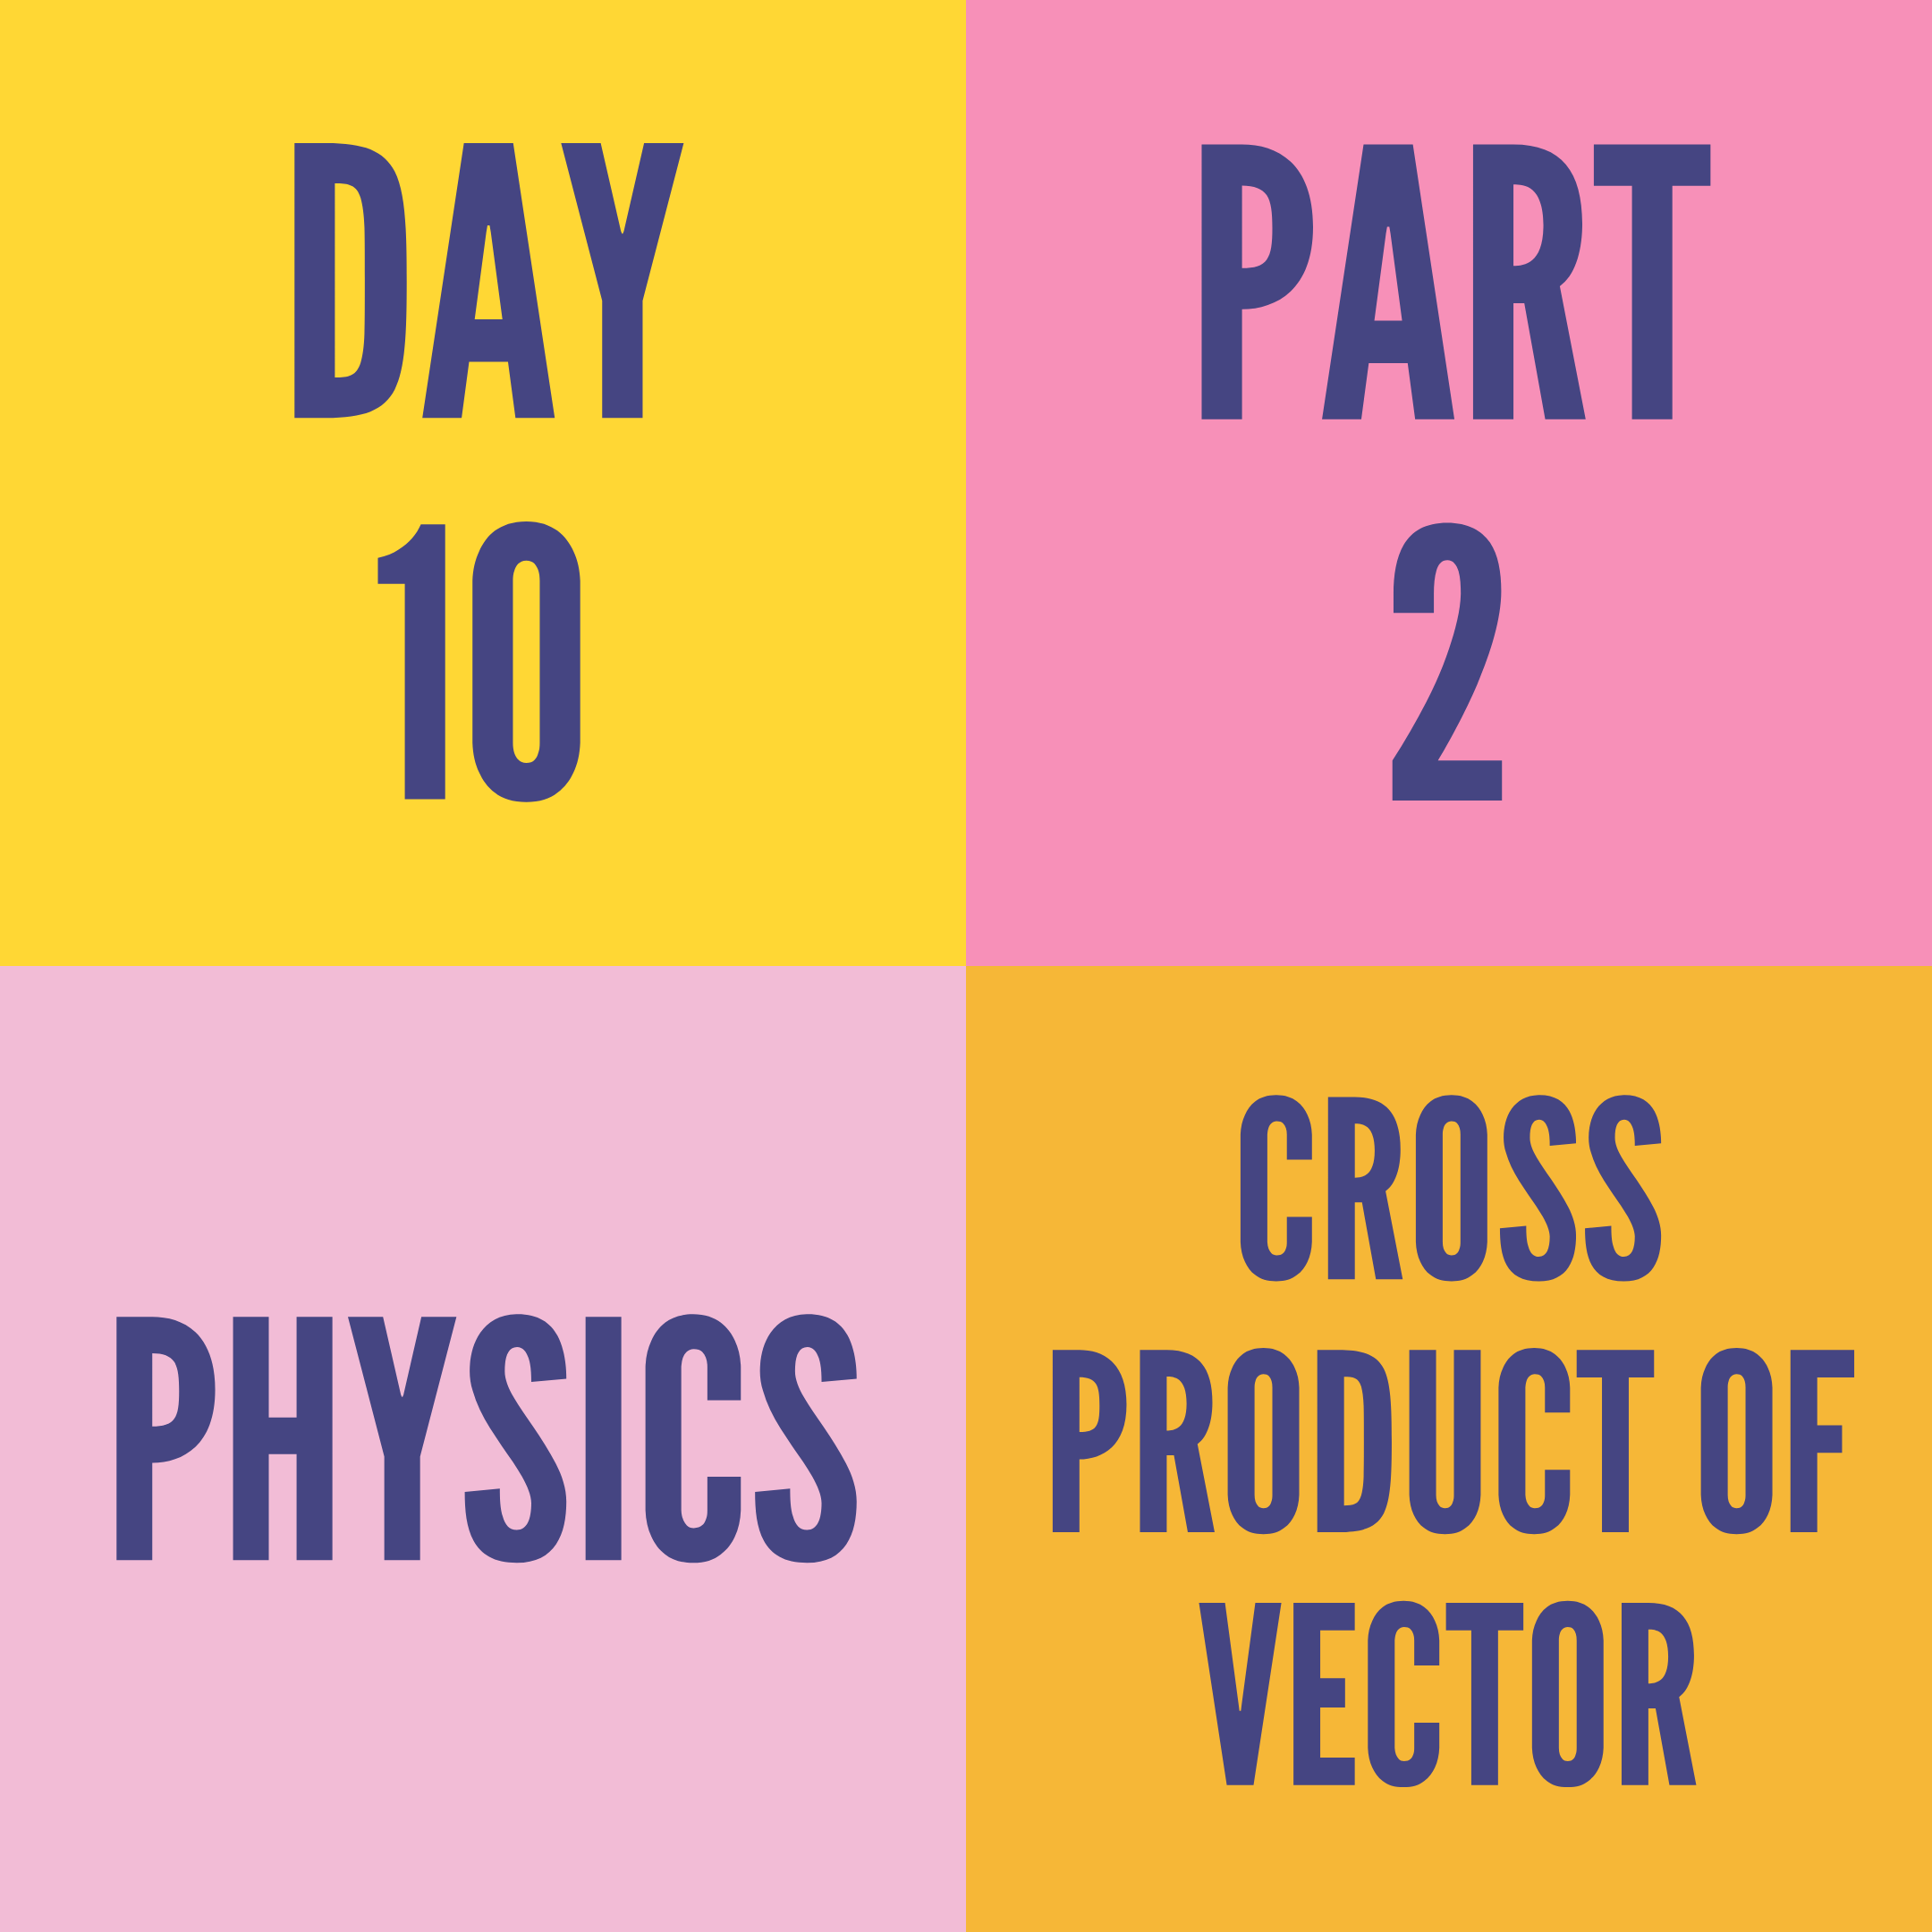 DAY-10 PART-2 CROSS PRODUCT OF VECTOR